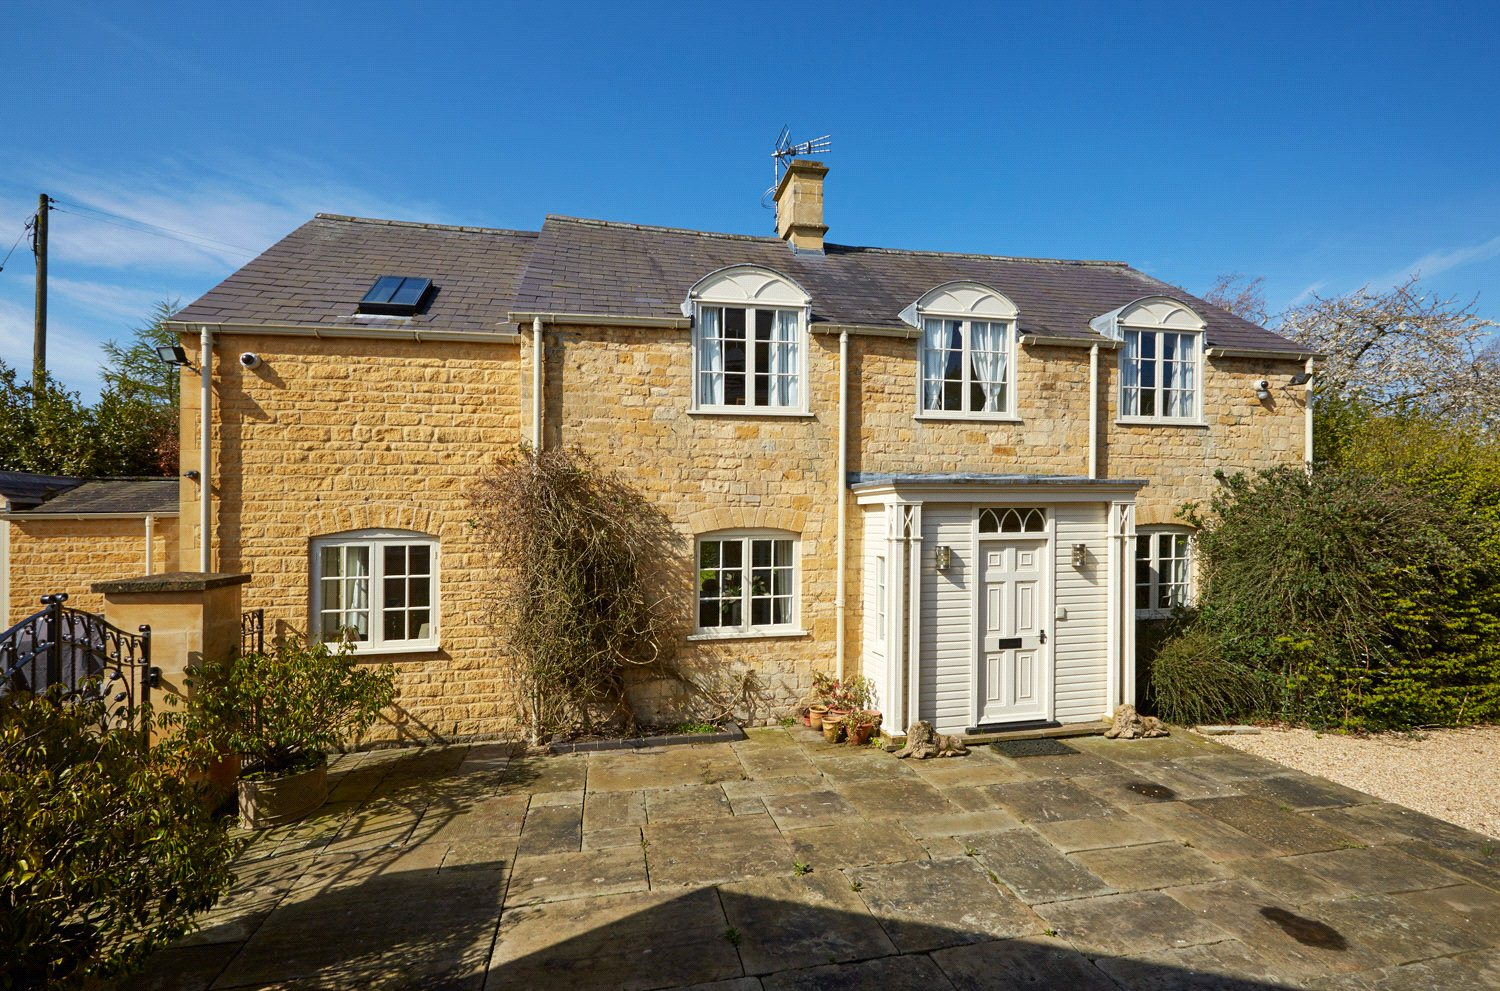 Additional photo for property listing at Todenham, Moreton-in-Marsh, Gloucestershire, GL56 Moreton In Marsh, Angleterre